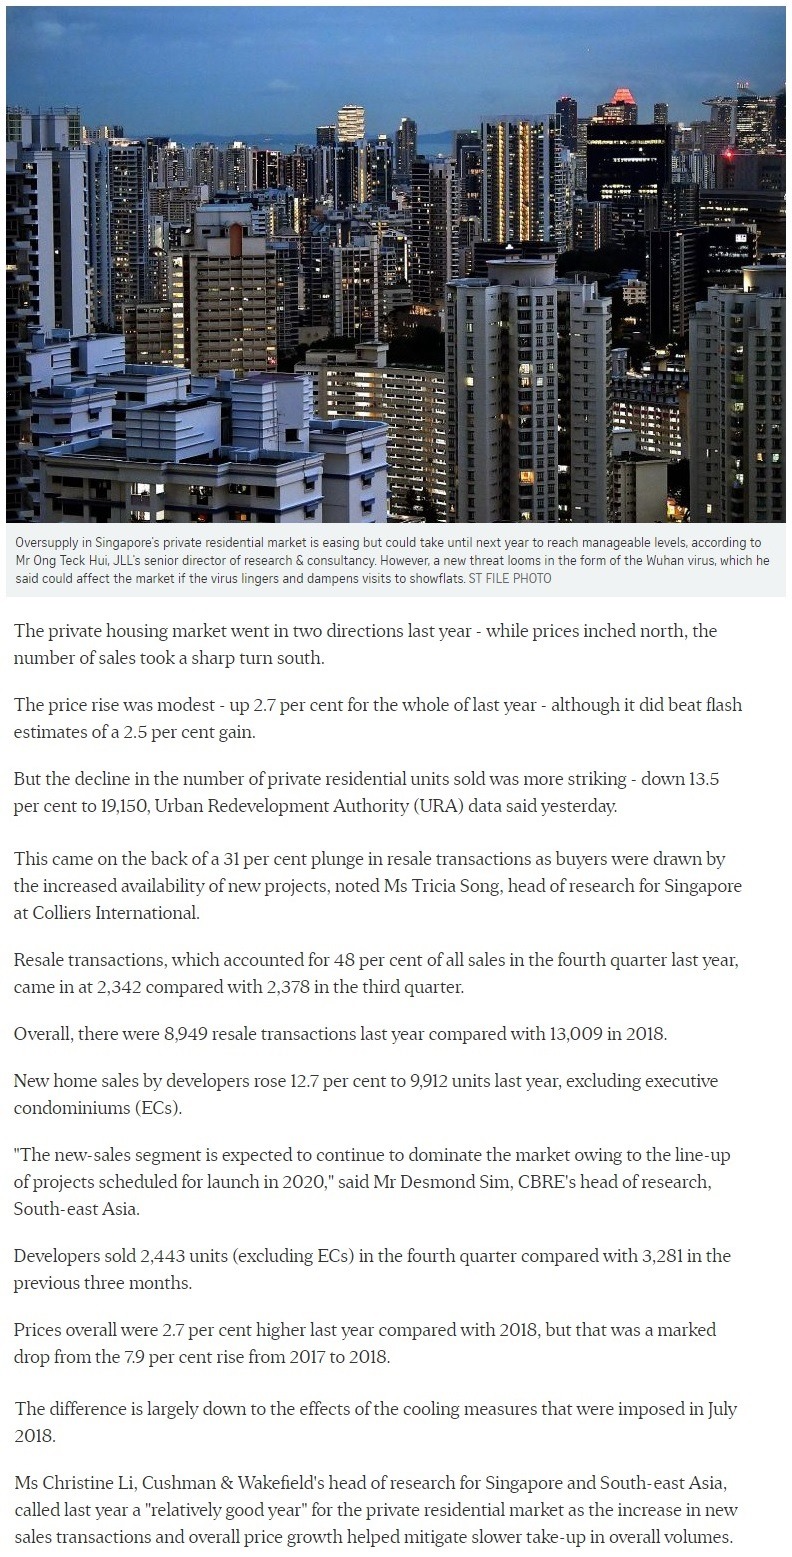 One Draycott - Singapore private home prices inch up 2.7% for 2019 Part 1